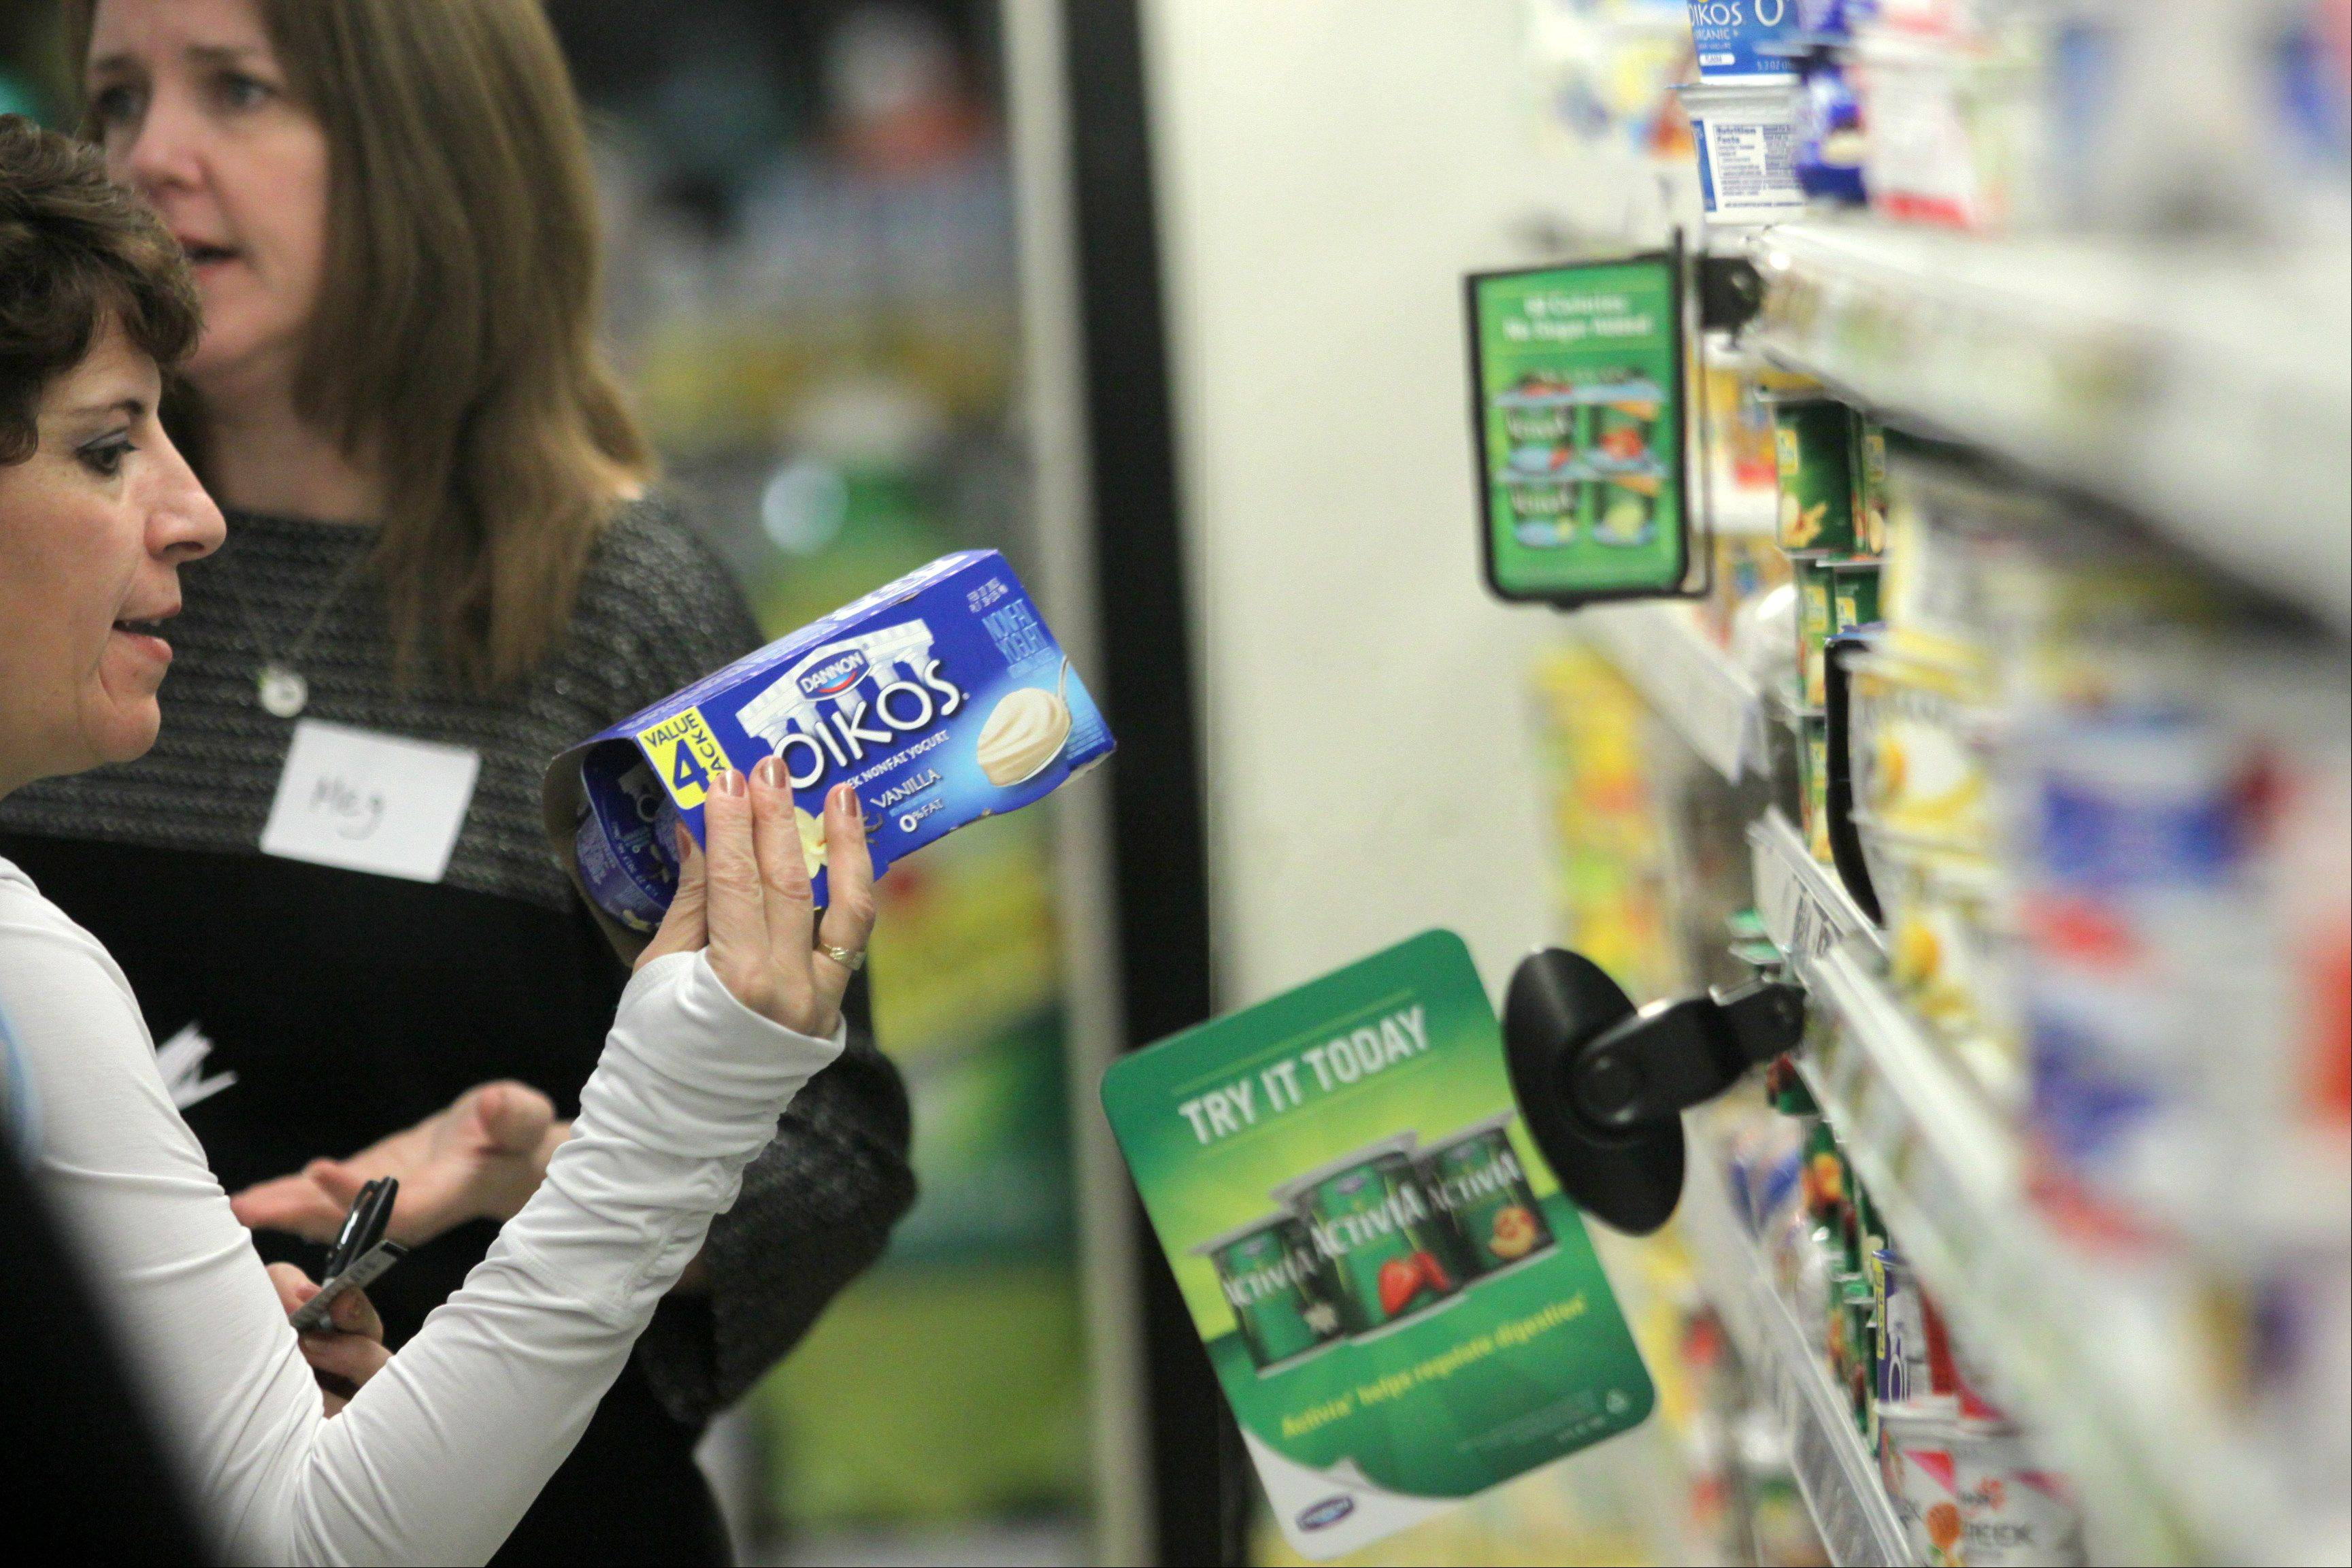 Martha Rodriguez of Streamwood, translator for the Fit Kids program offered by Alexian Brothers' pediatric department, studies nutrition facts on yogurt during a recent meeting at a Jewel in Schaumburg.